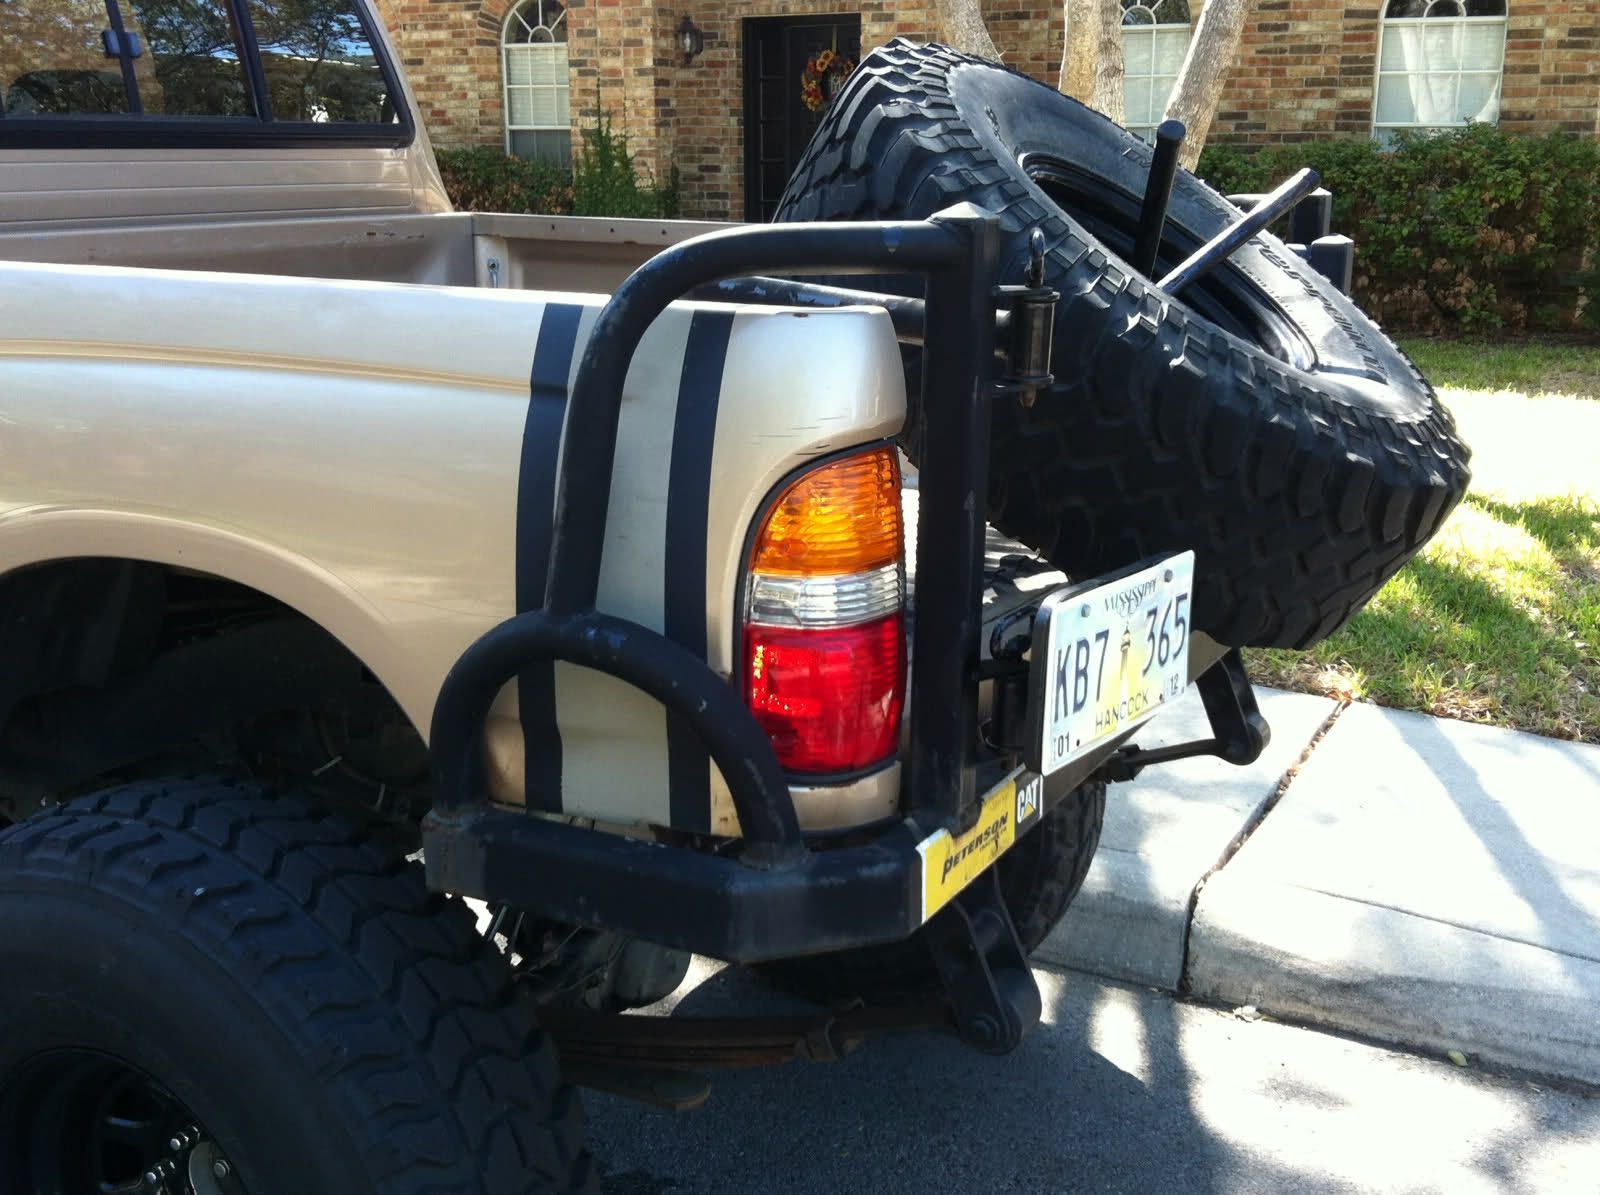 Up for grabs is a sas 1998 supercharged extended cab toyota tacoma peetie s old truck its got miles on the clock and full synthetic